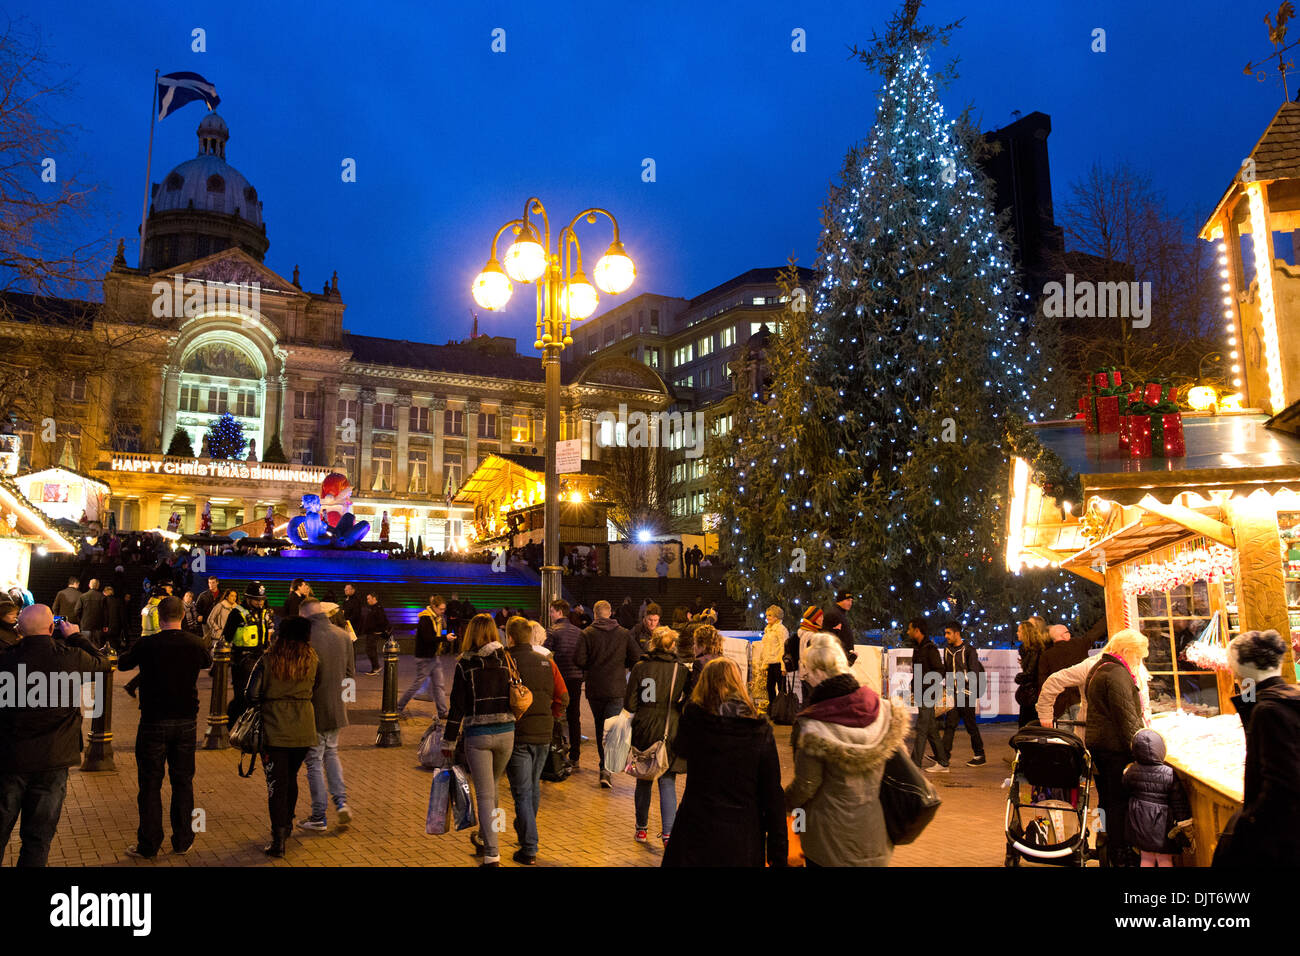 stock photo the birmingham frankfurt german market the christmas tree in victoria square overlooked by the council house - Christmas Tree Market